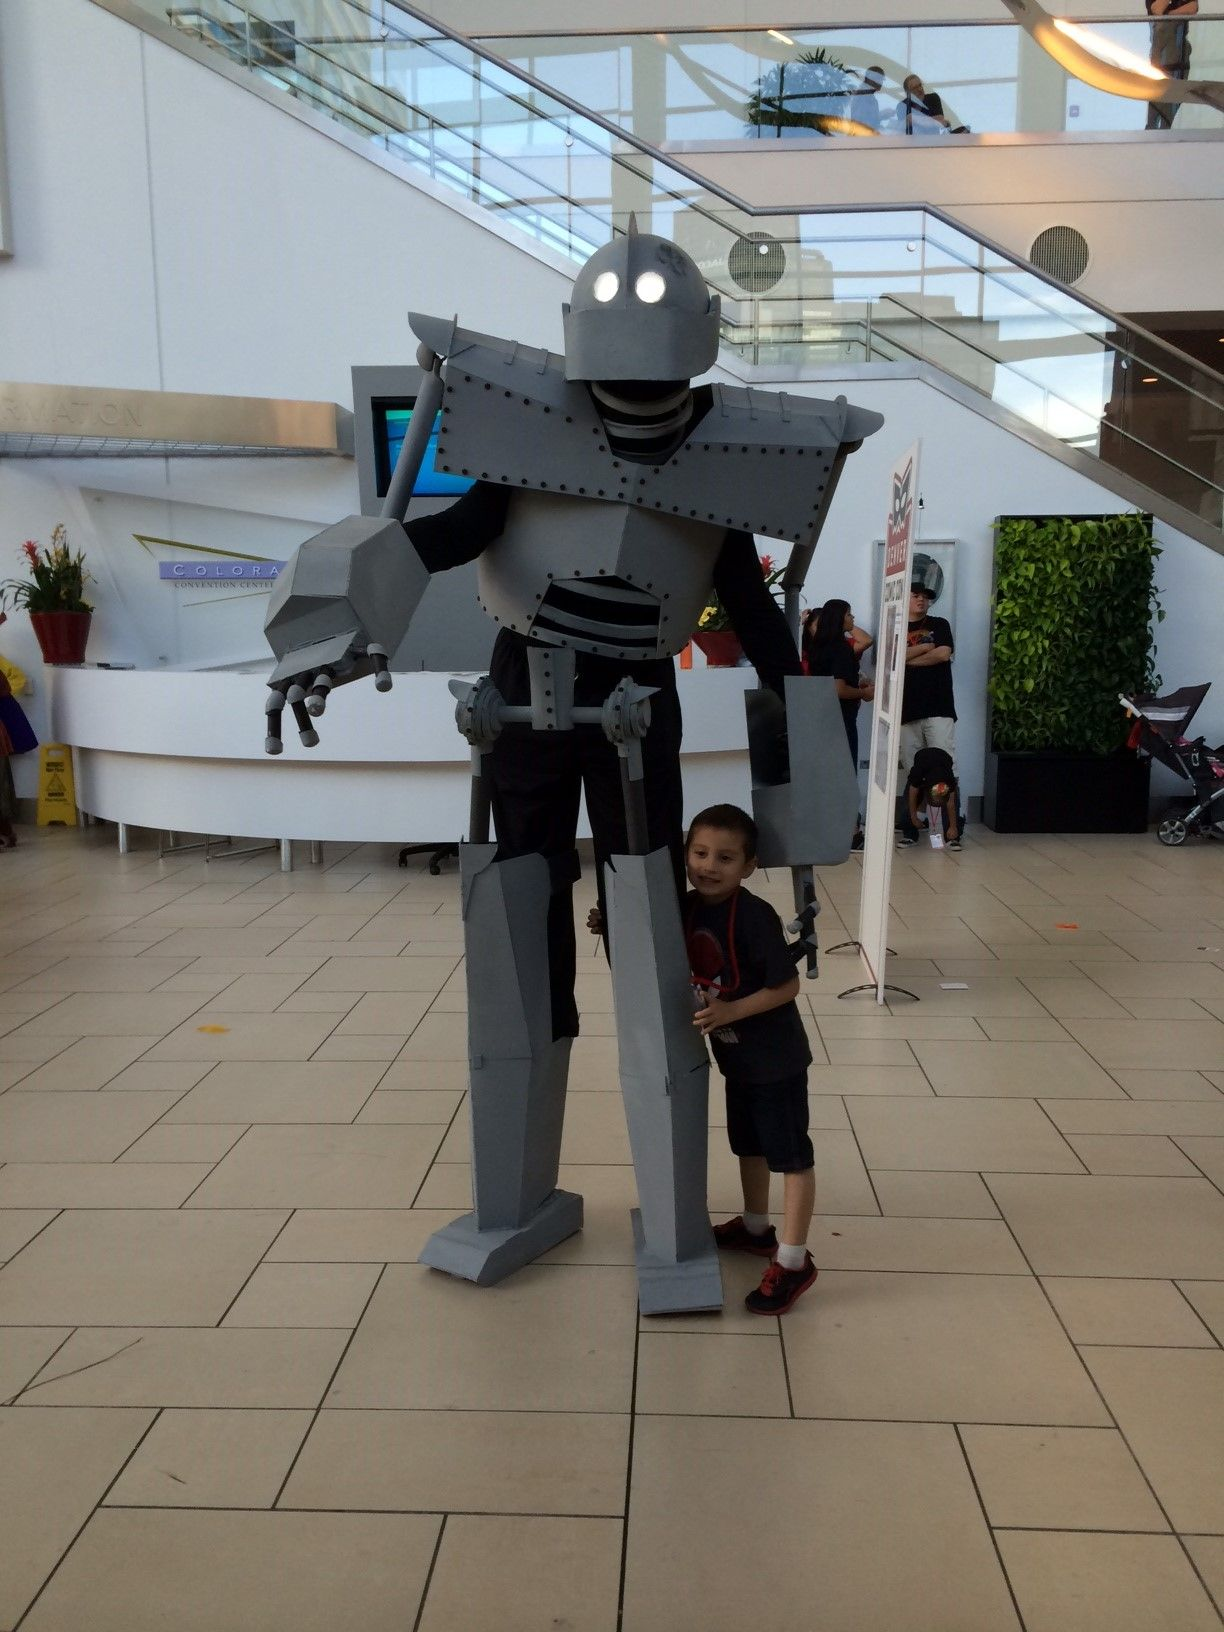 My Iron Giant From Dcc Love The Kiddos Reaction To The